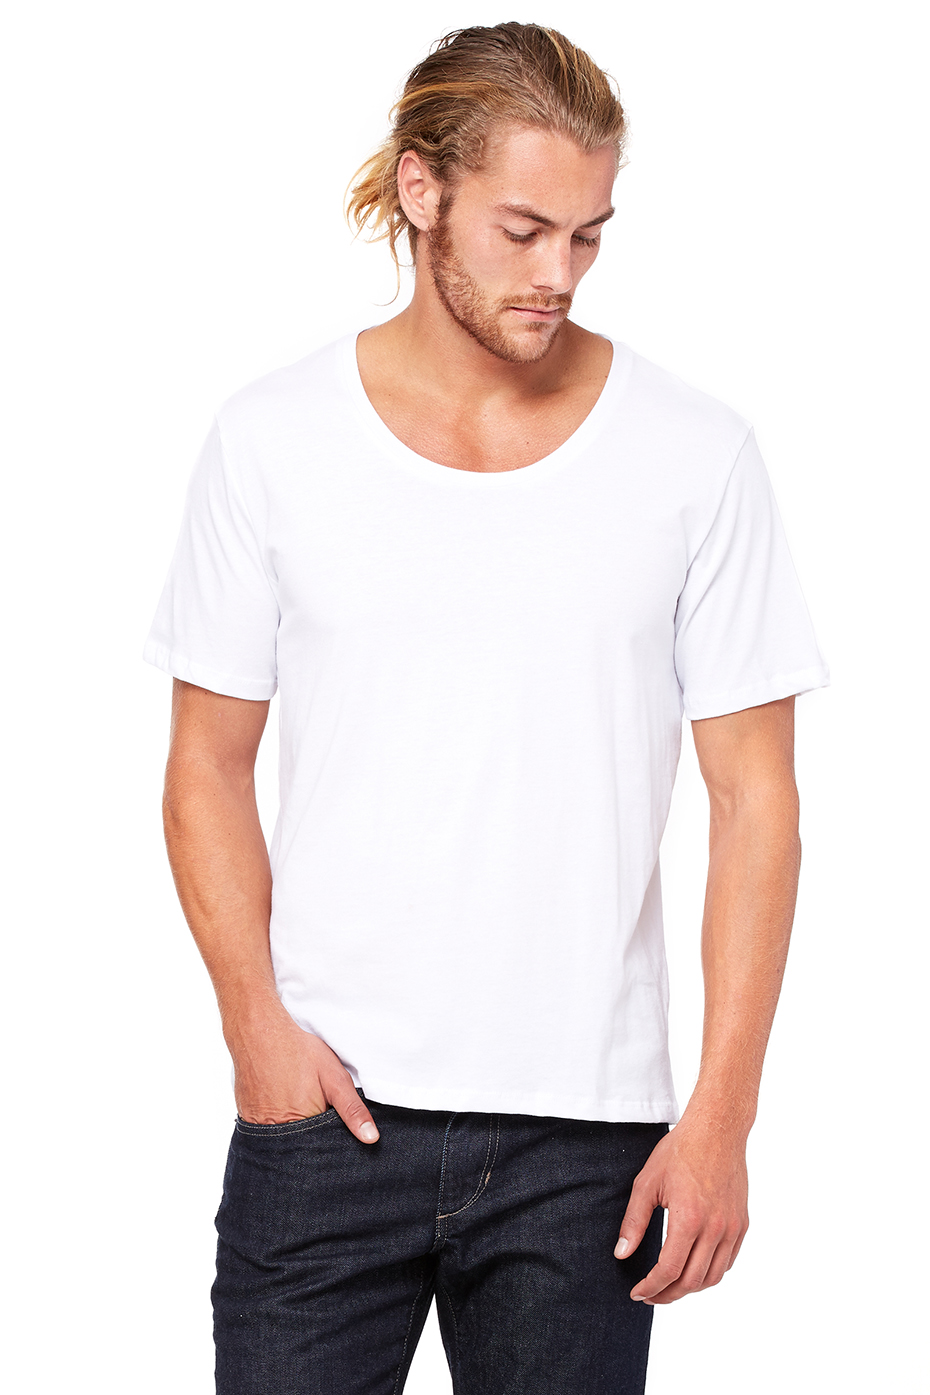 Scoop Neck T Shirt Mens